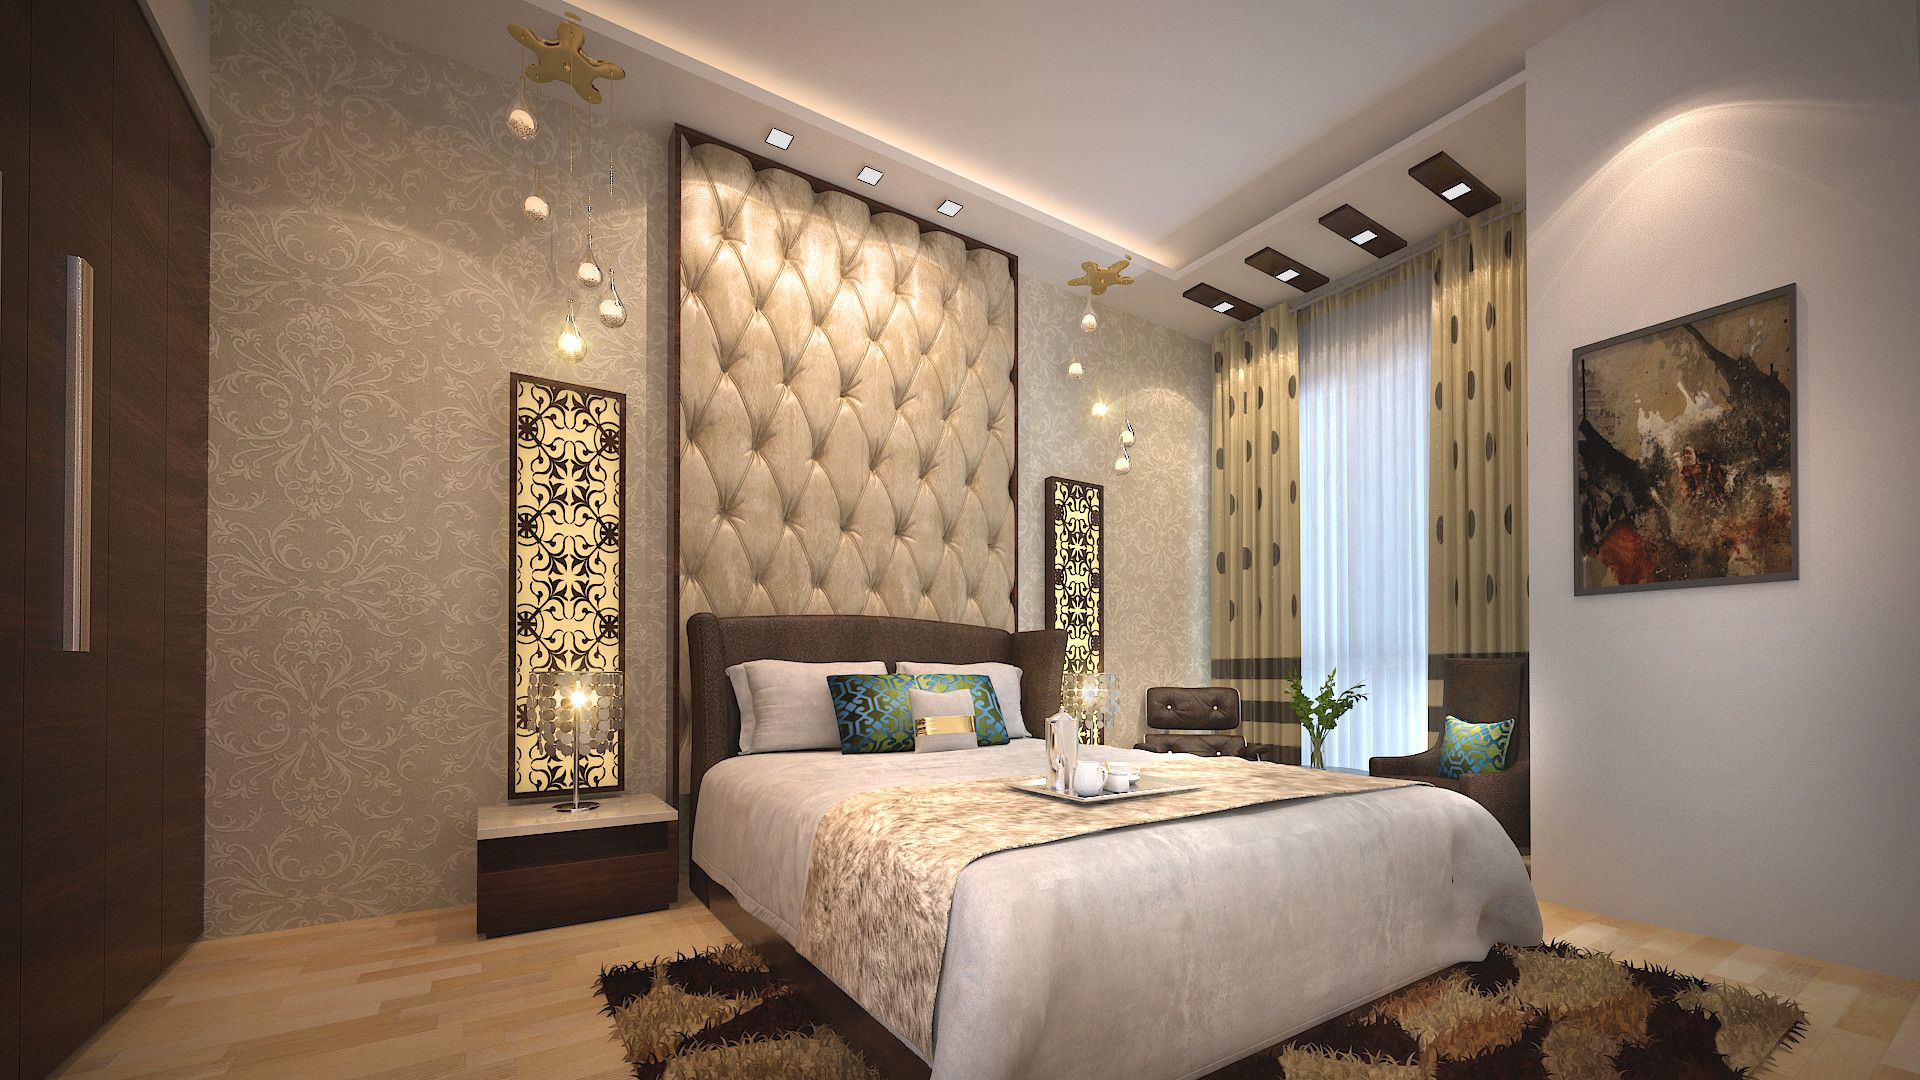 Bedroom Paneling View Of Bed Room Designed With Wooden Bed Having